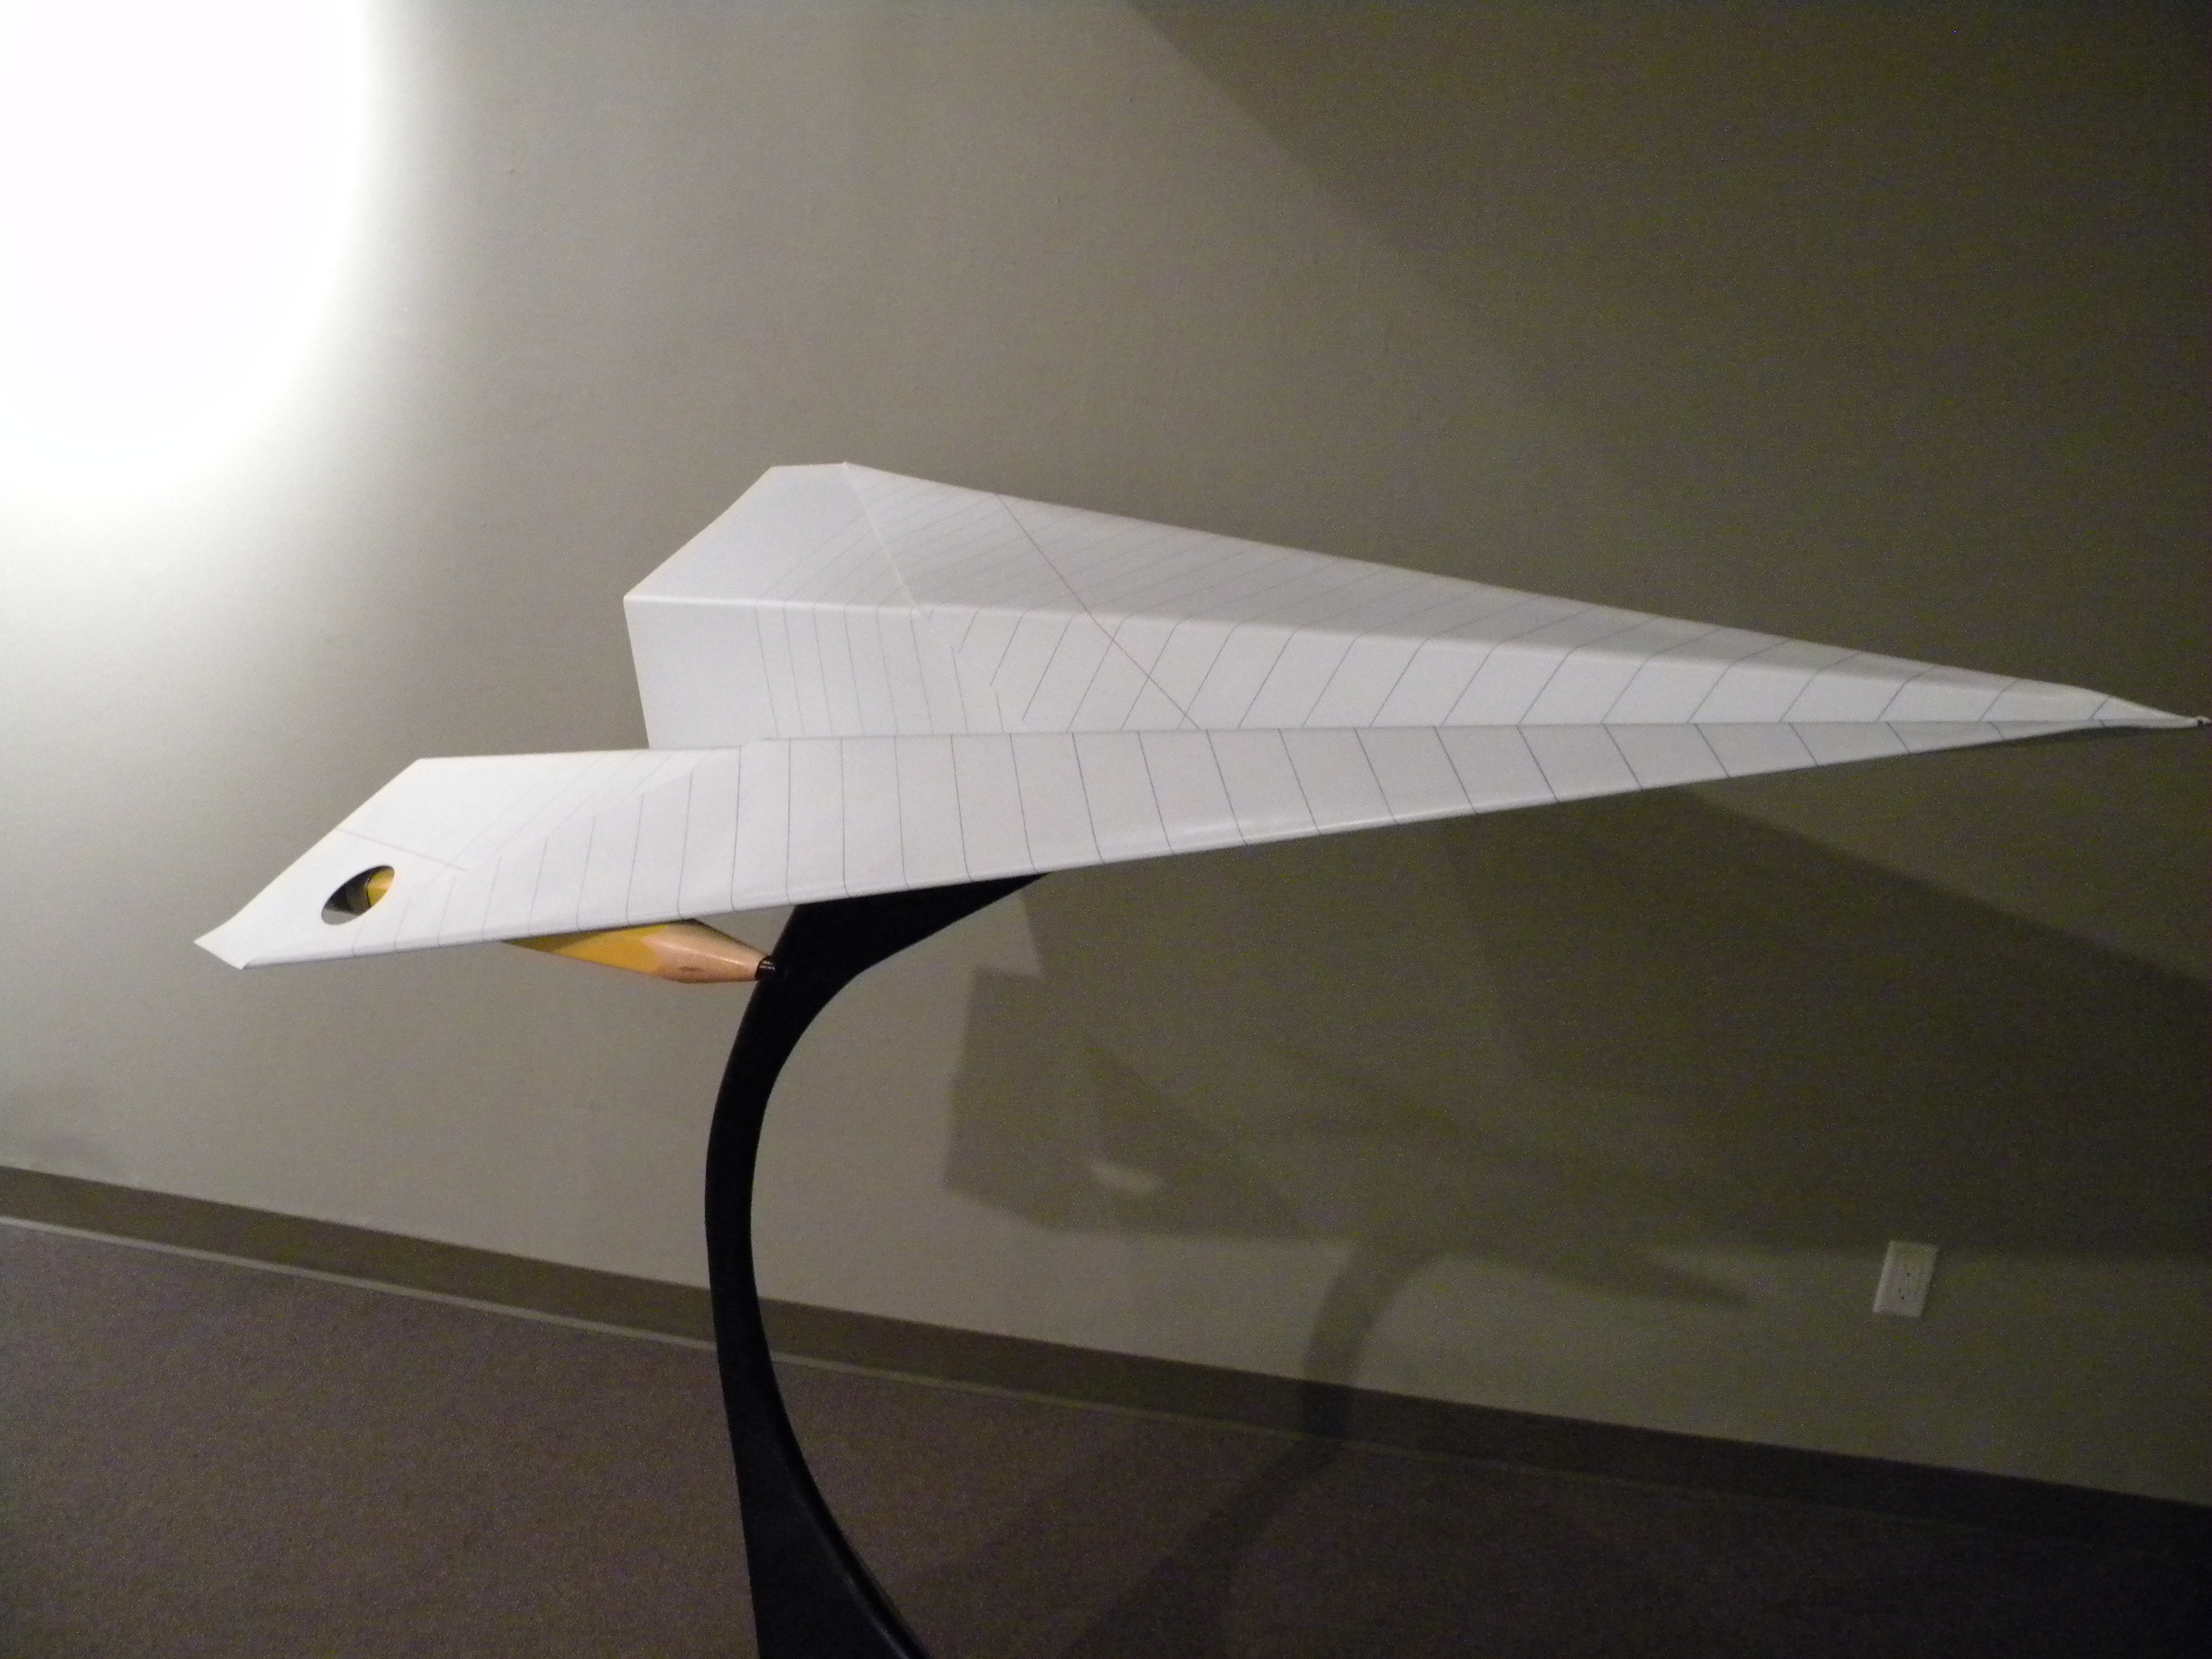 Large steel sculpture that looks like a paper airplane made from a sheet of notebook paper with pencil rockets.